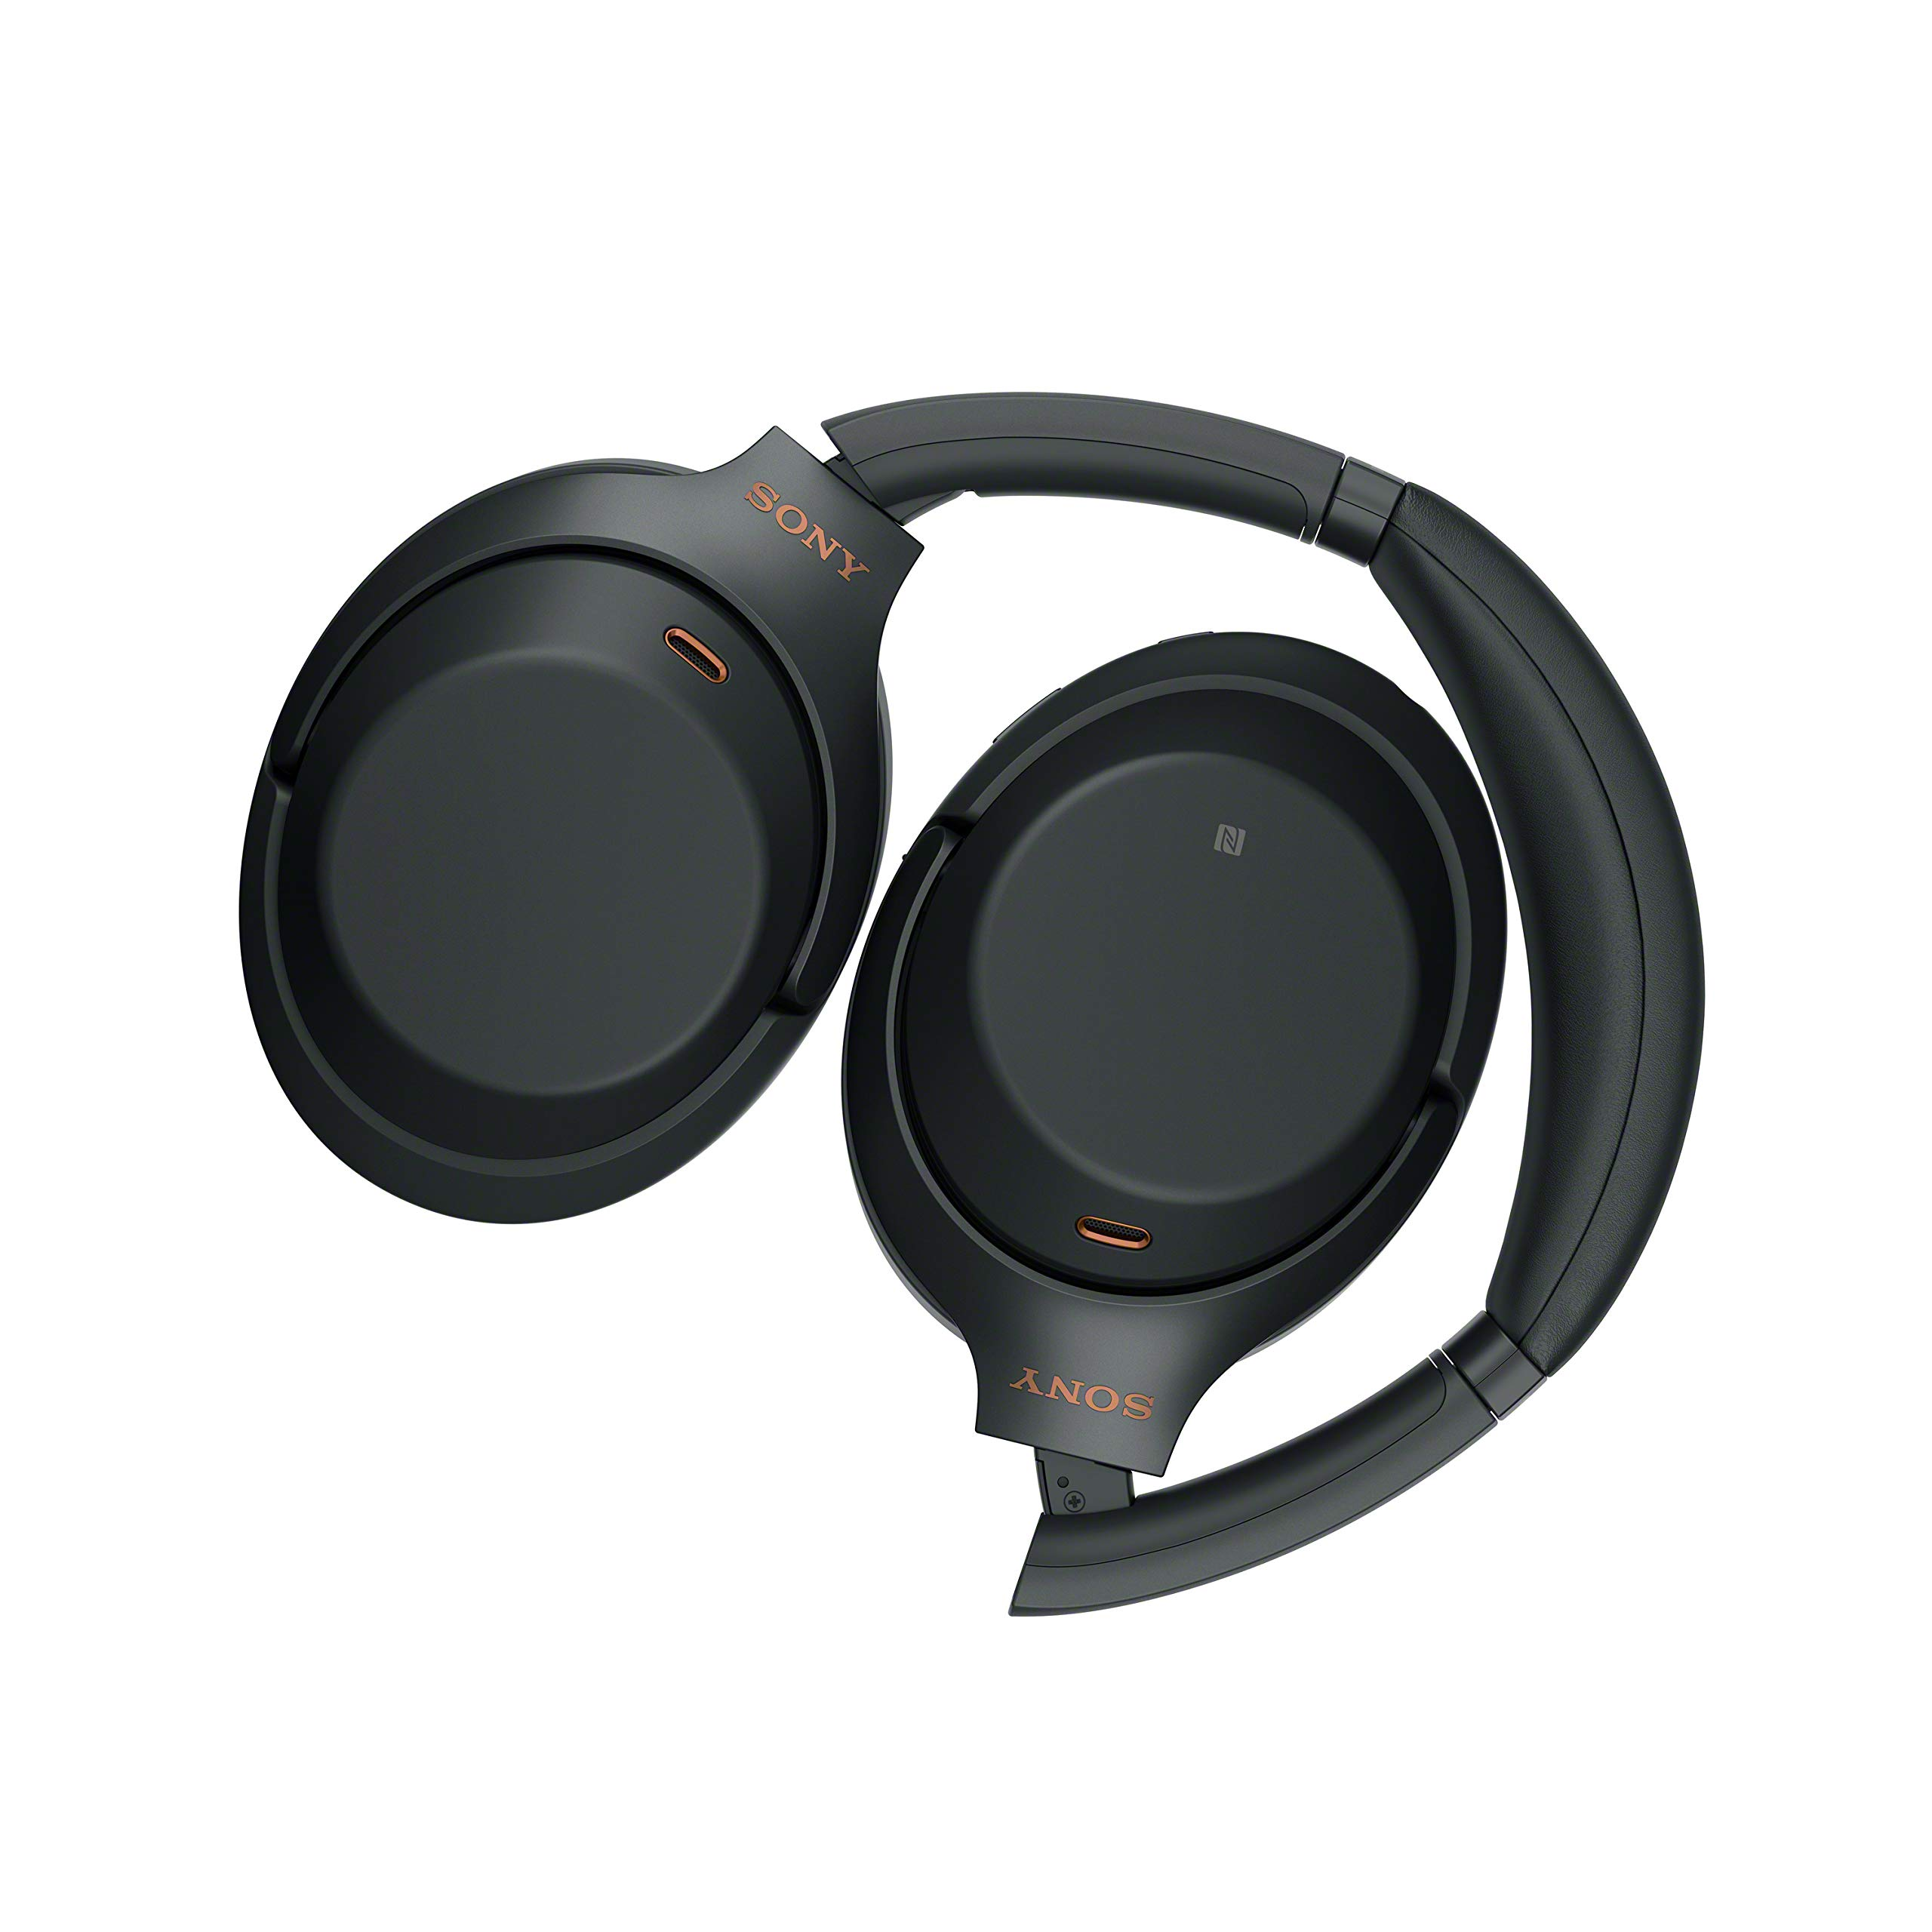 Sony WH1000XM3 Bluetooth Wireless Noise Canceling Headphones, Black WH-1000XM3/B (Renewed) by Sony (Image #4)